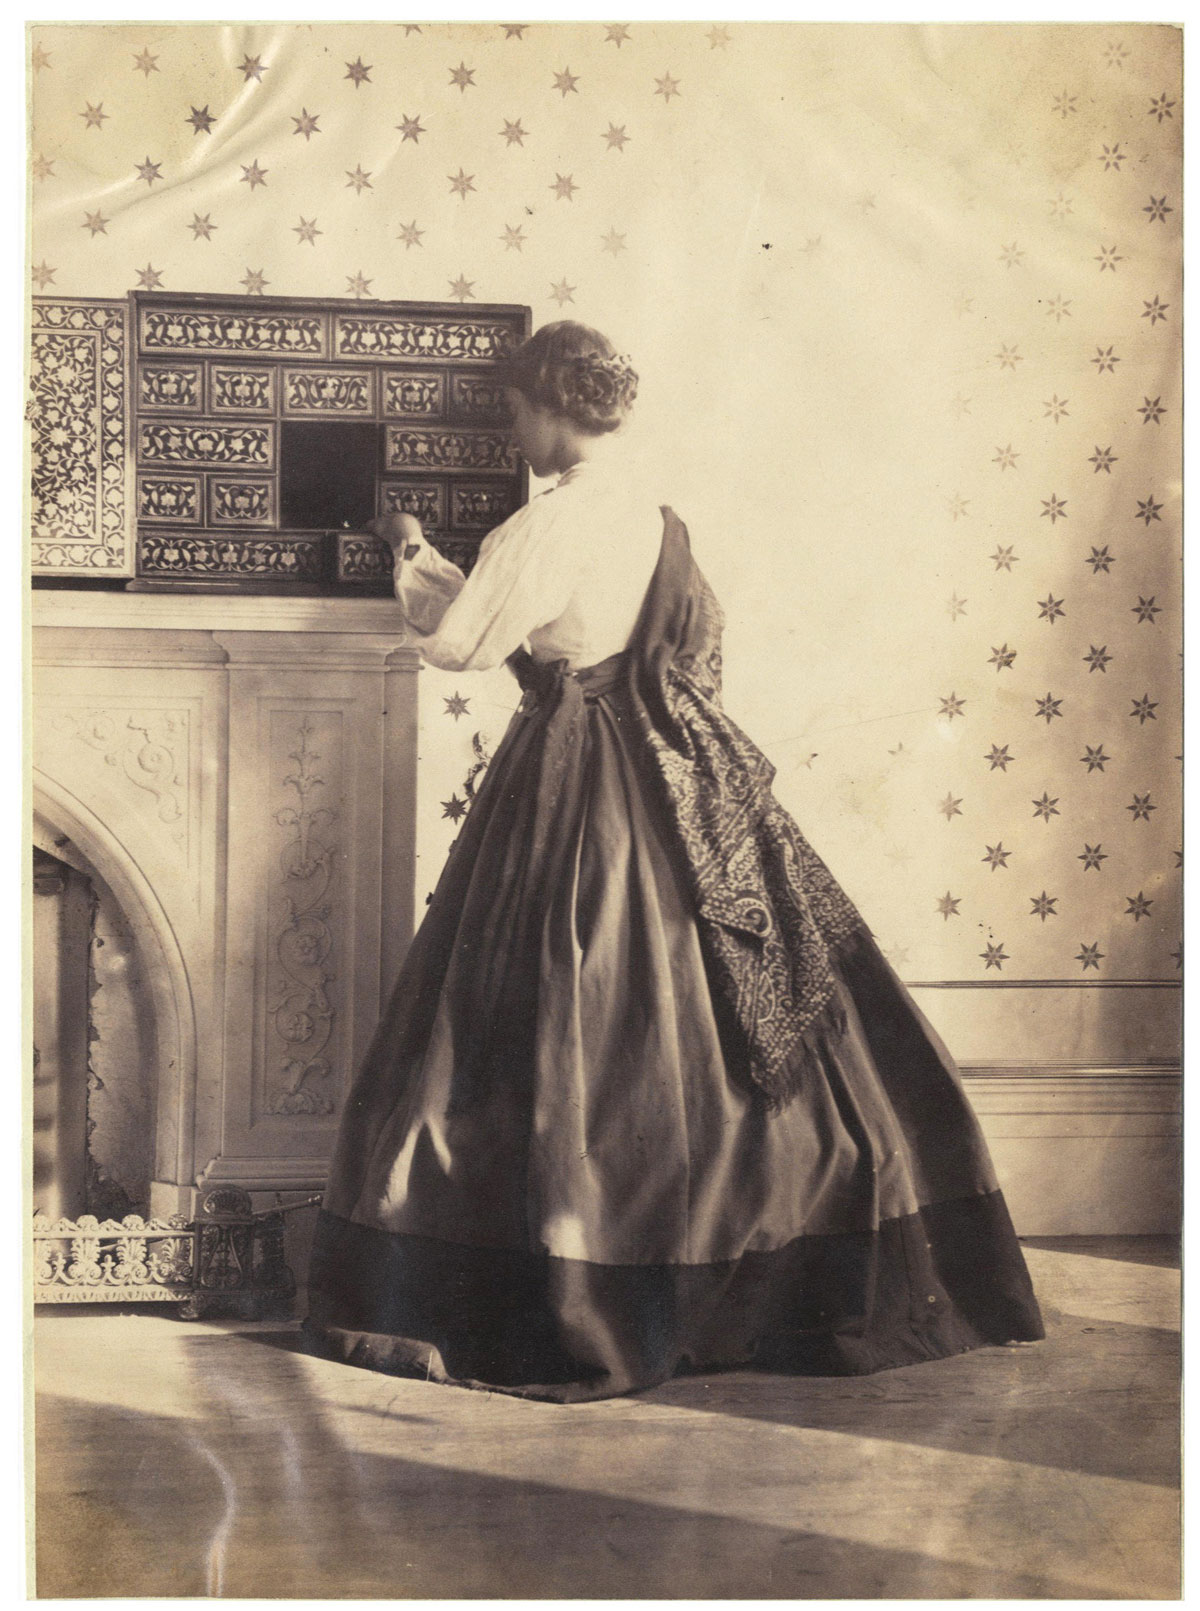 19th century photography Lorine introduces 5 types of early 19th century photographs - daguerreotypes, ambrotypes, tintypes, cdvs (cartes de visite) and cabinet cards see http://oli.